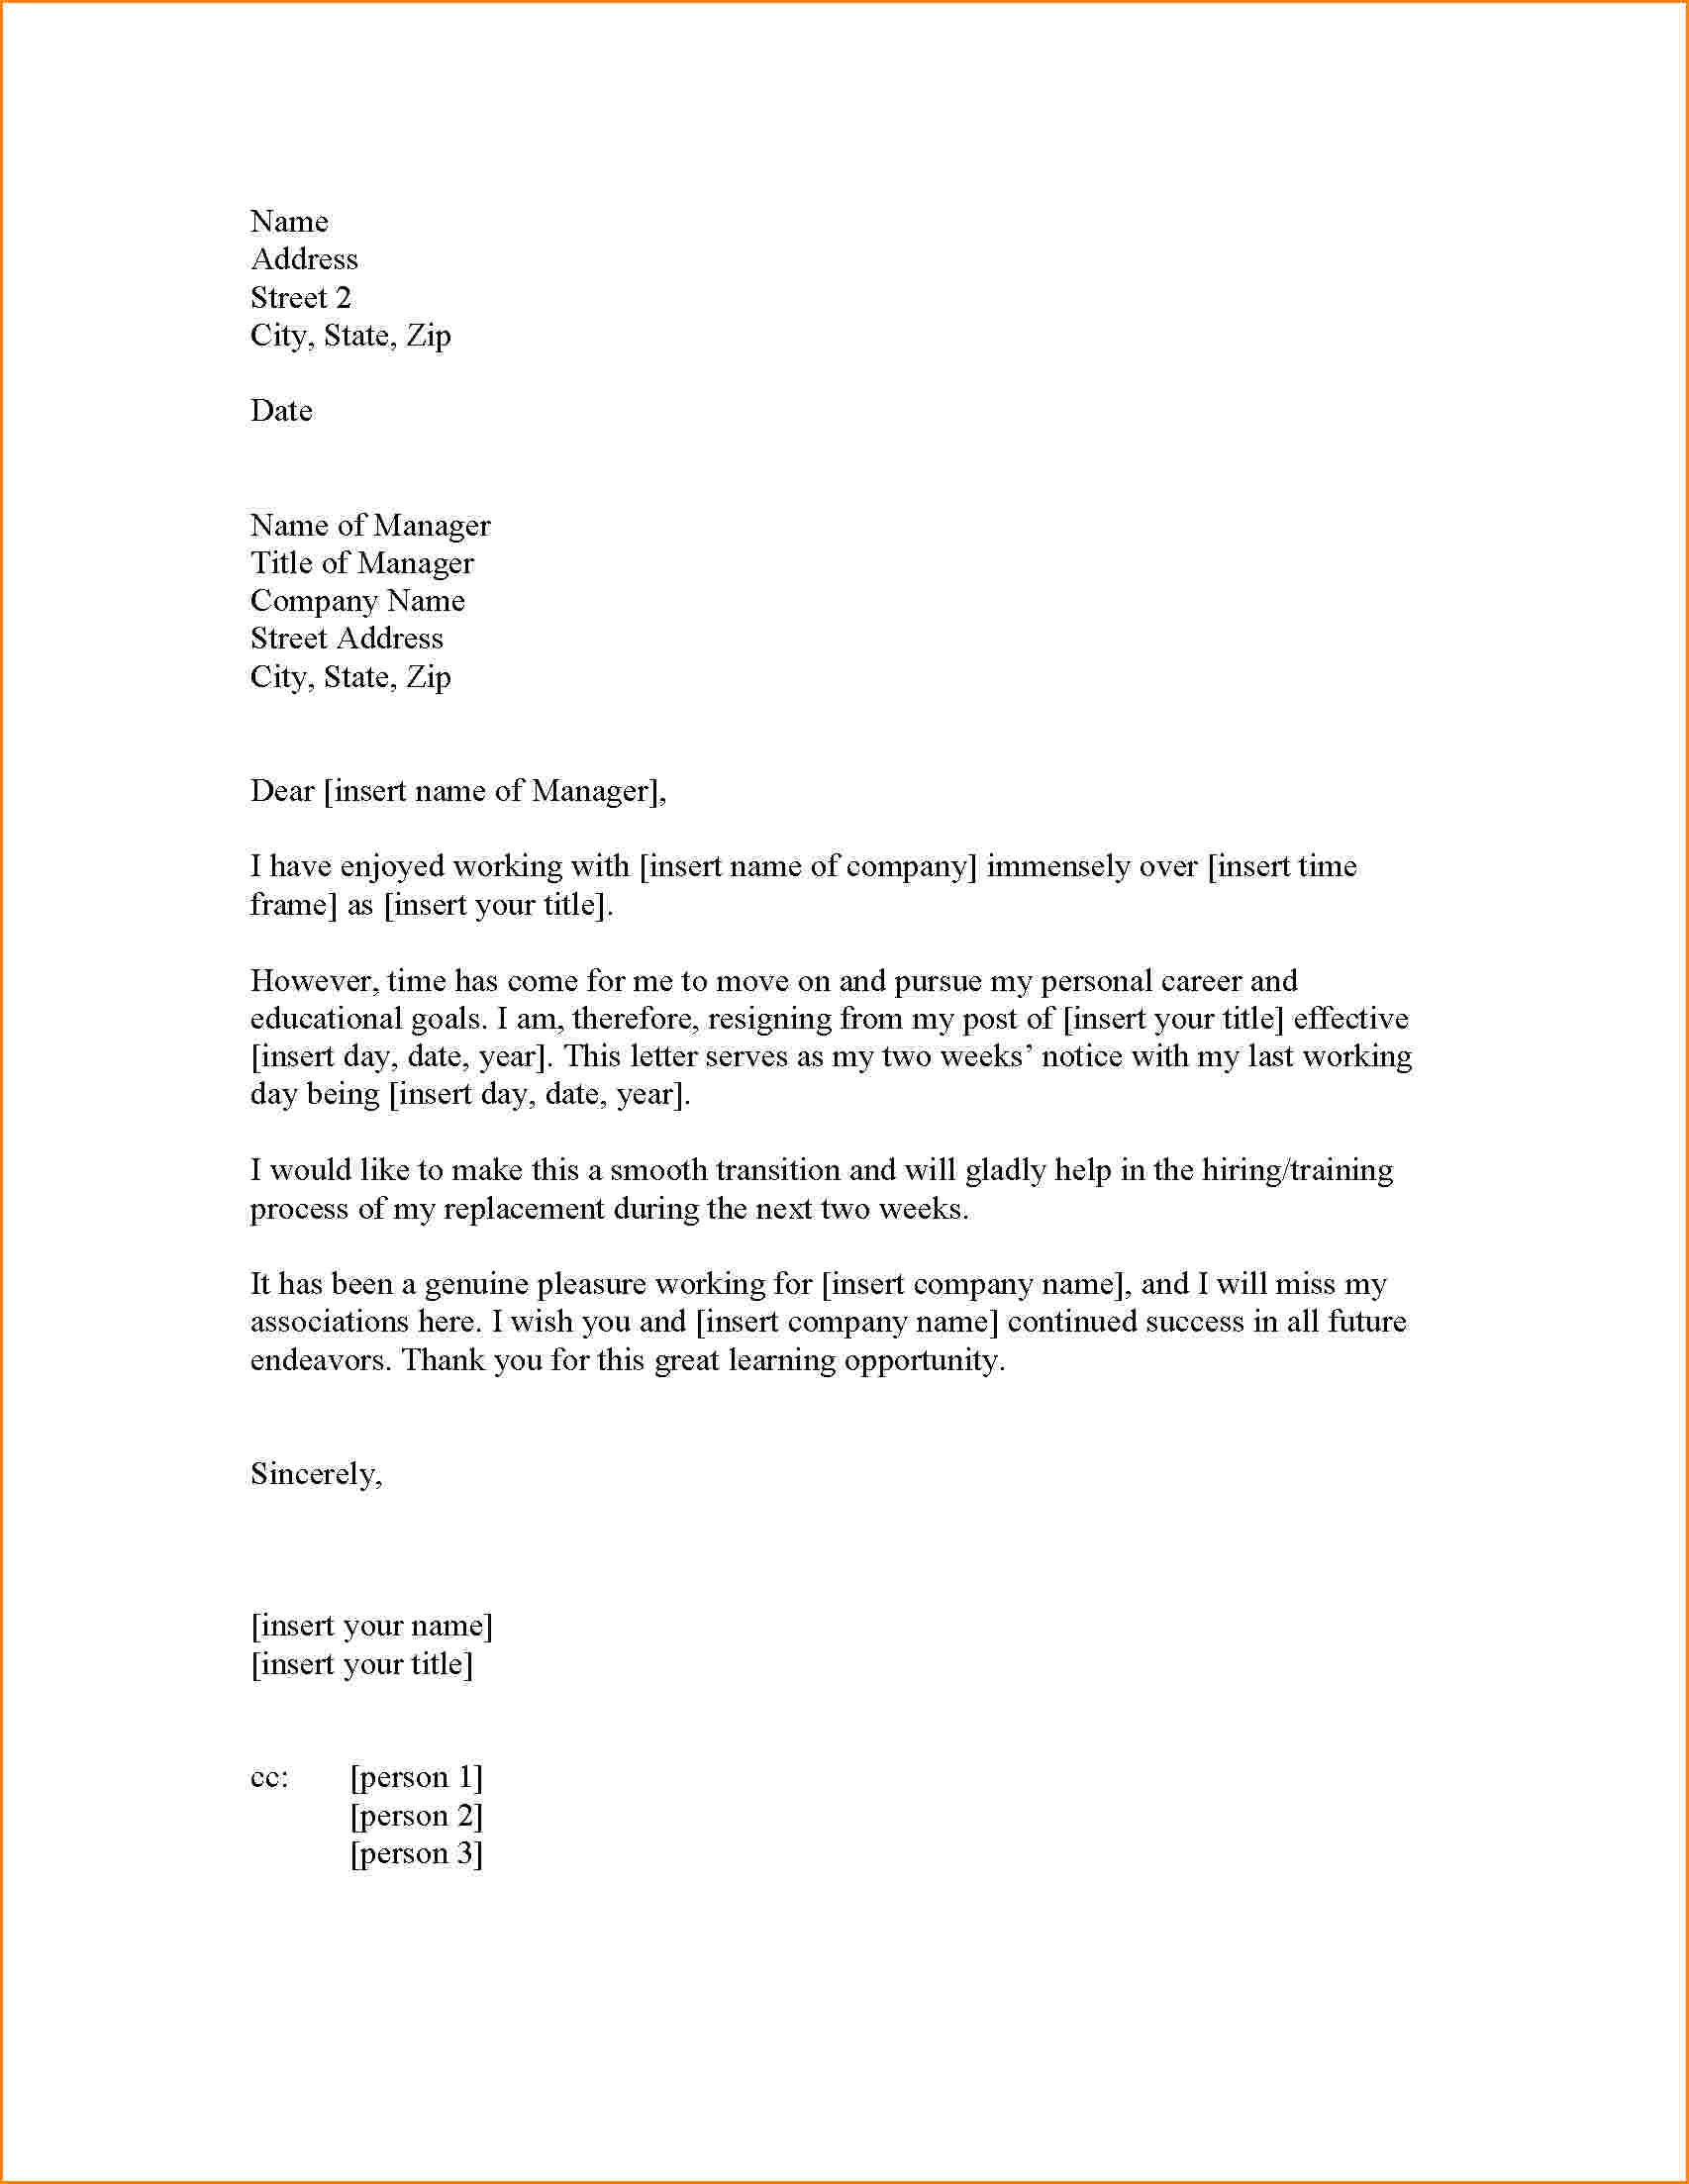 Lovely Resignation Letter Two Weeks Notice Images About Resignation   Two Week Notice Letter